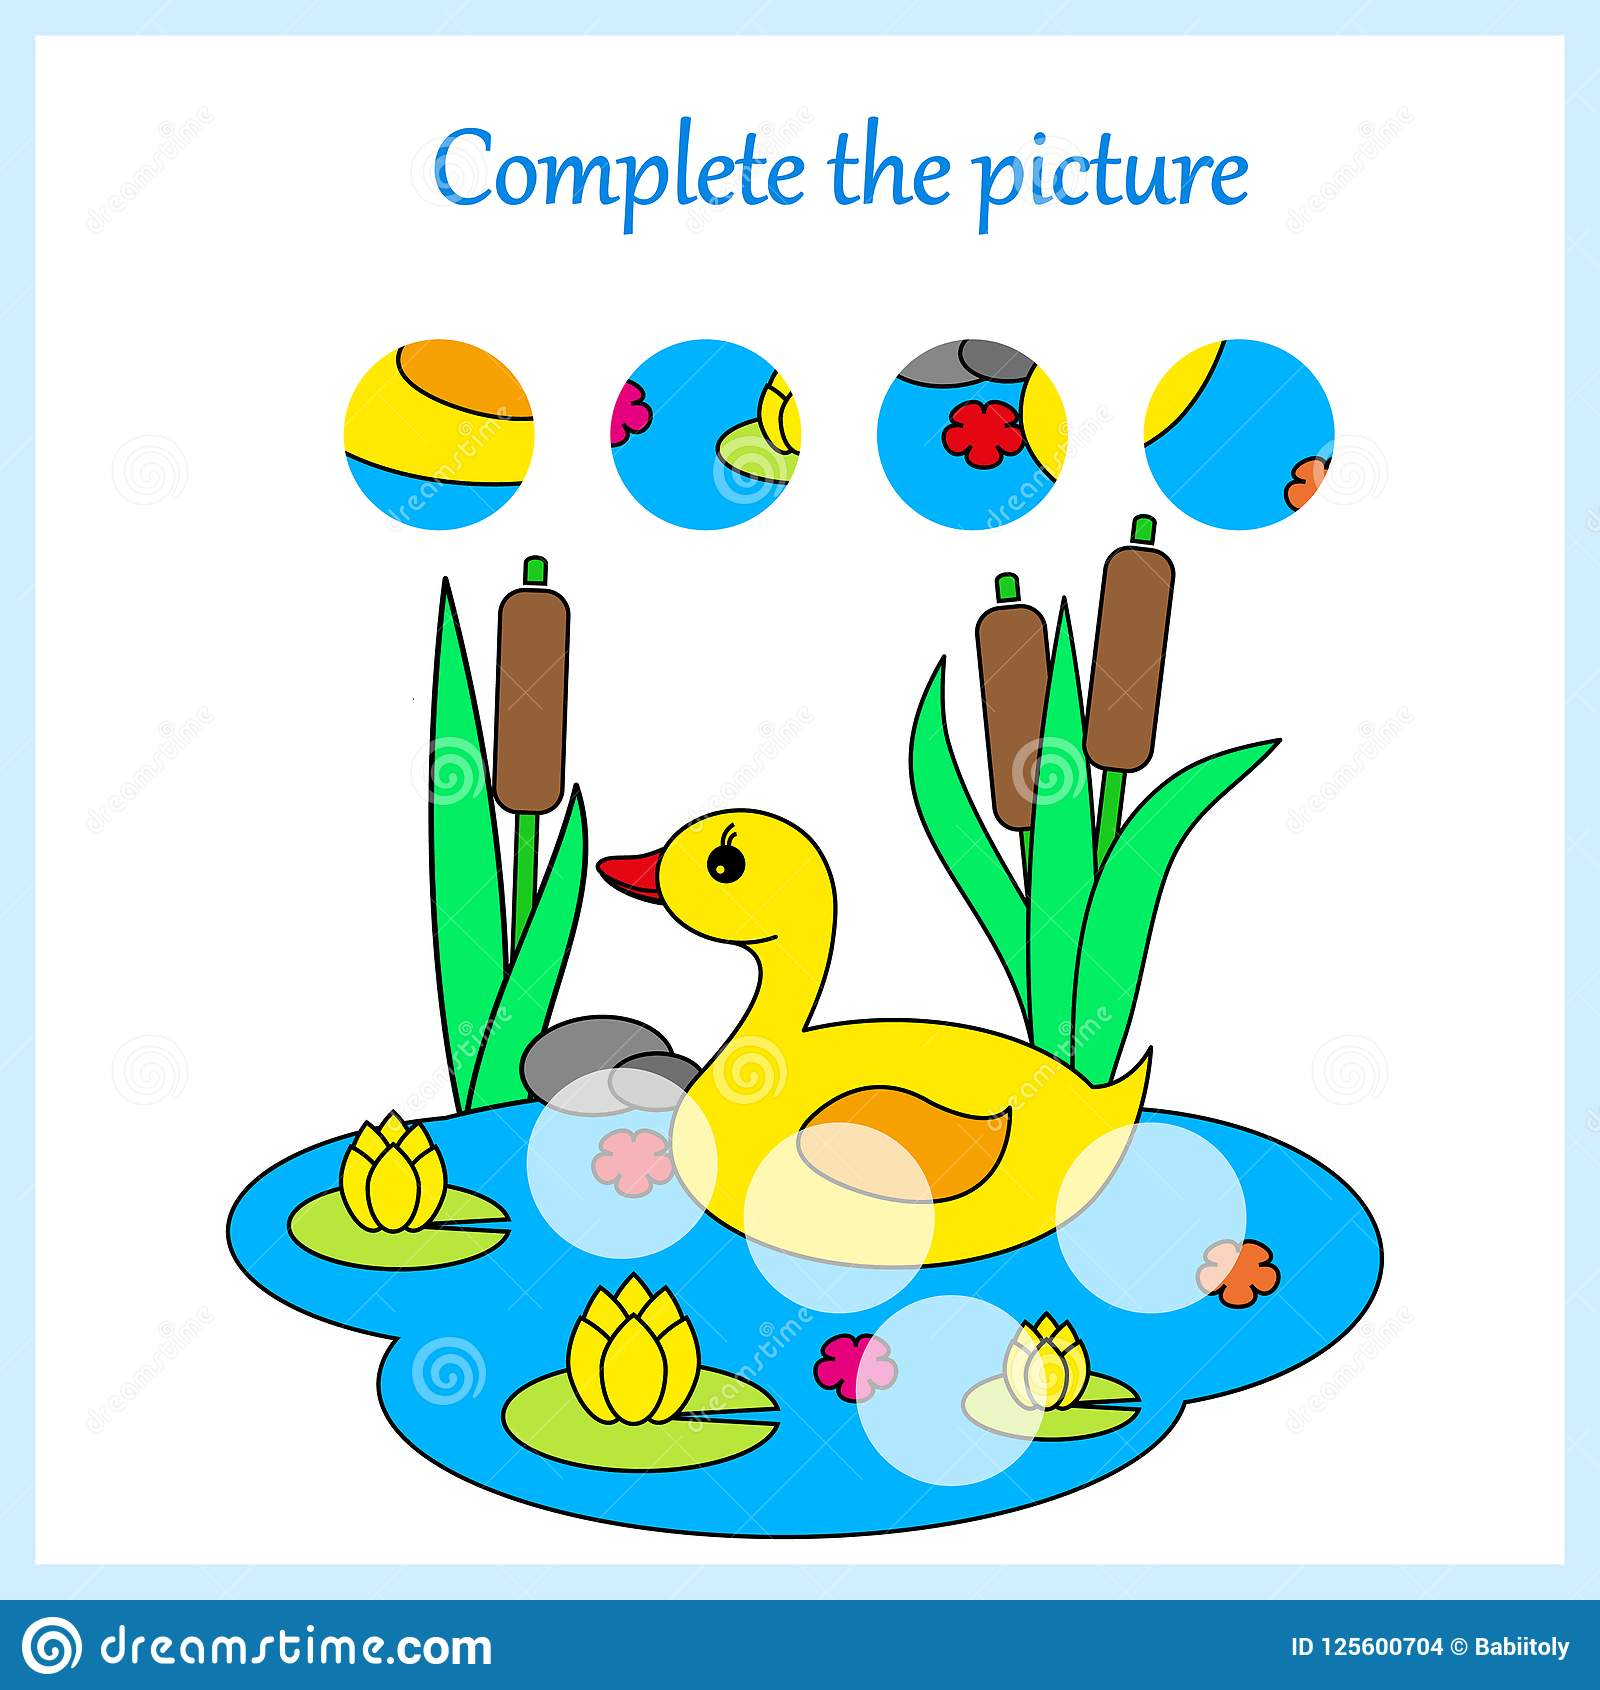 Worksheet For Kids Complete The Picture Game For